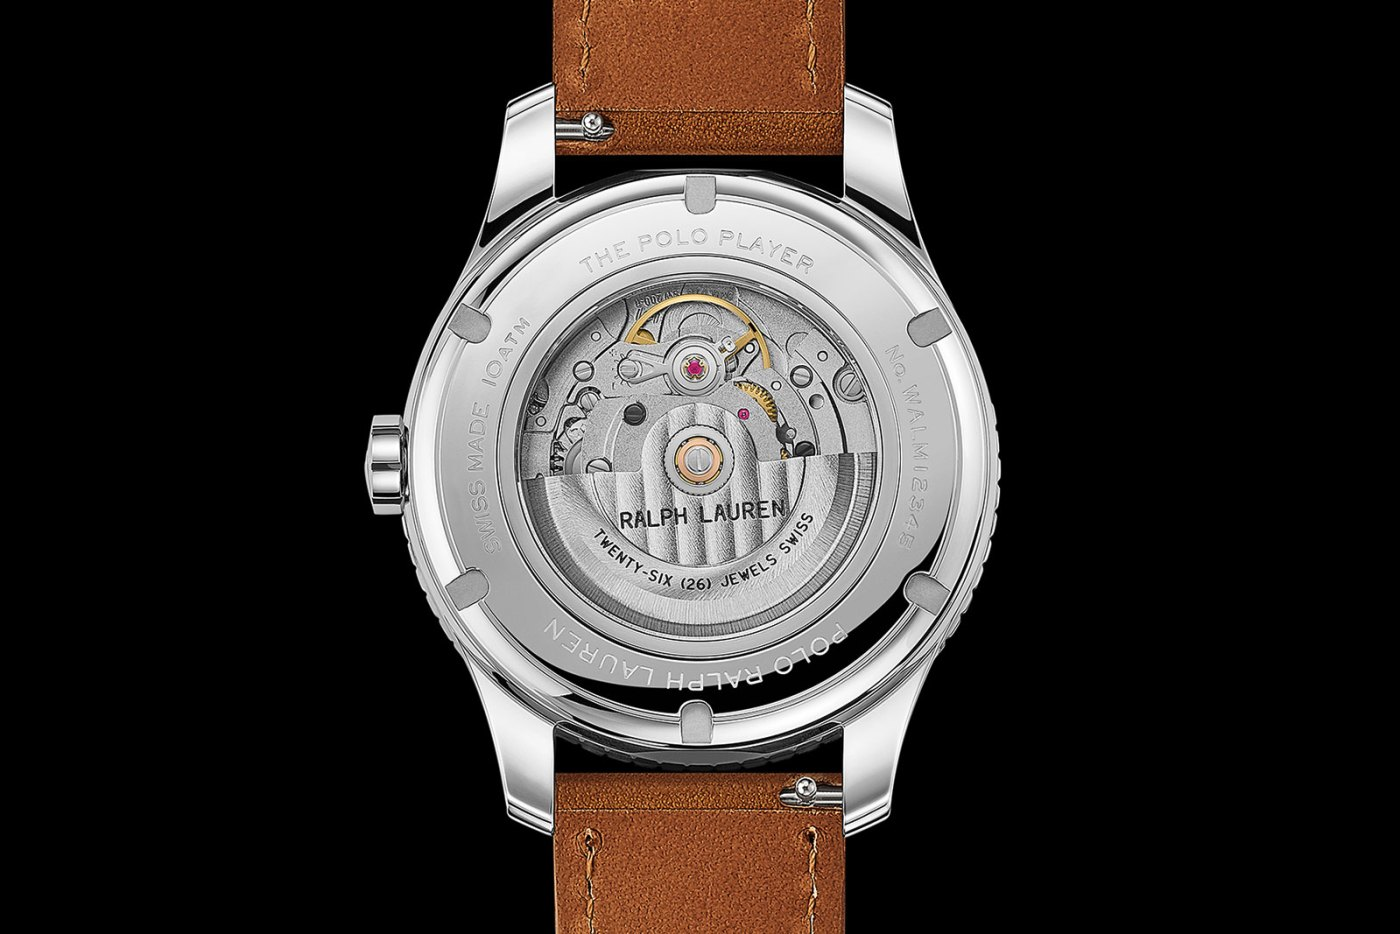 The Polo Watch 2020 caseback